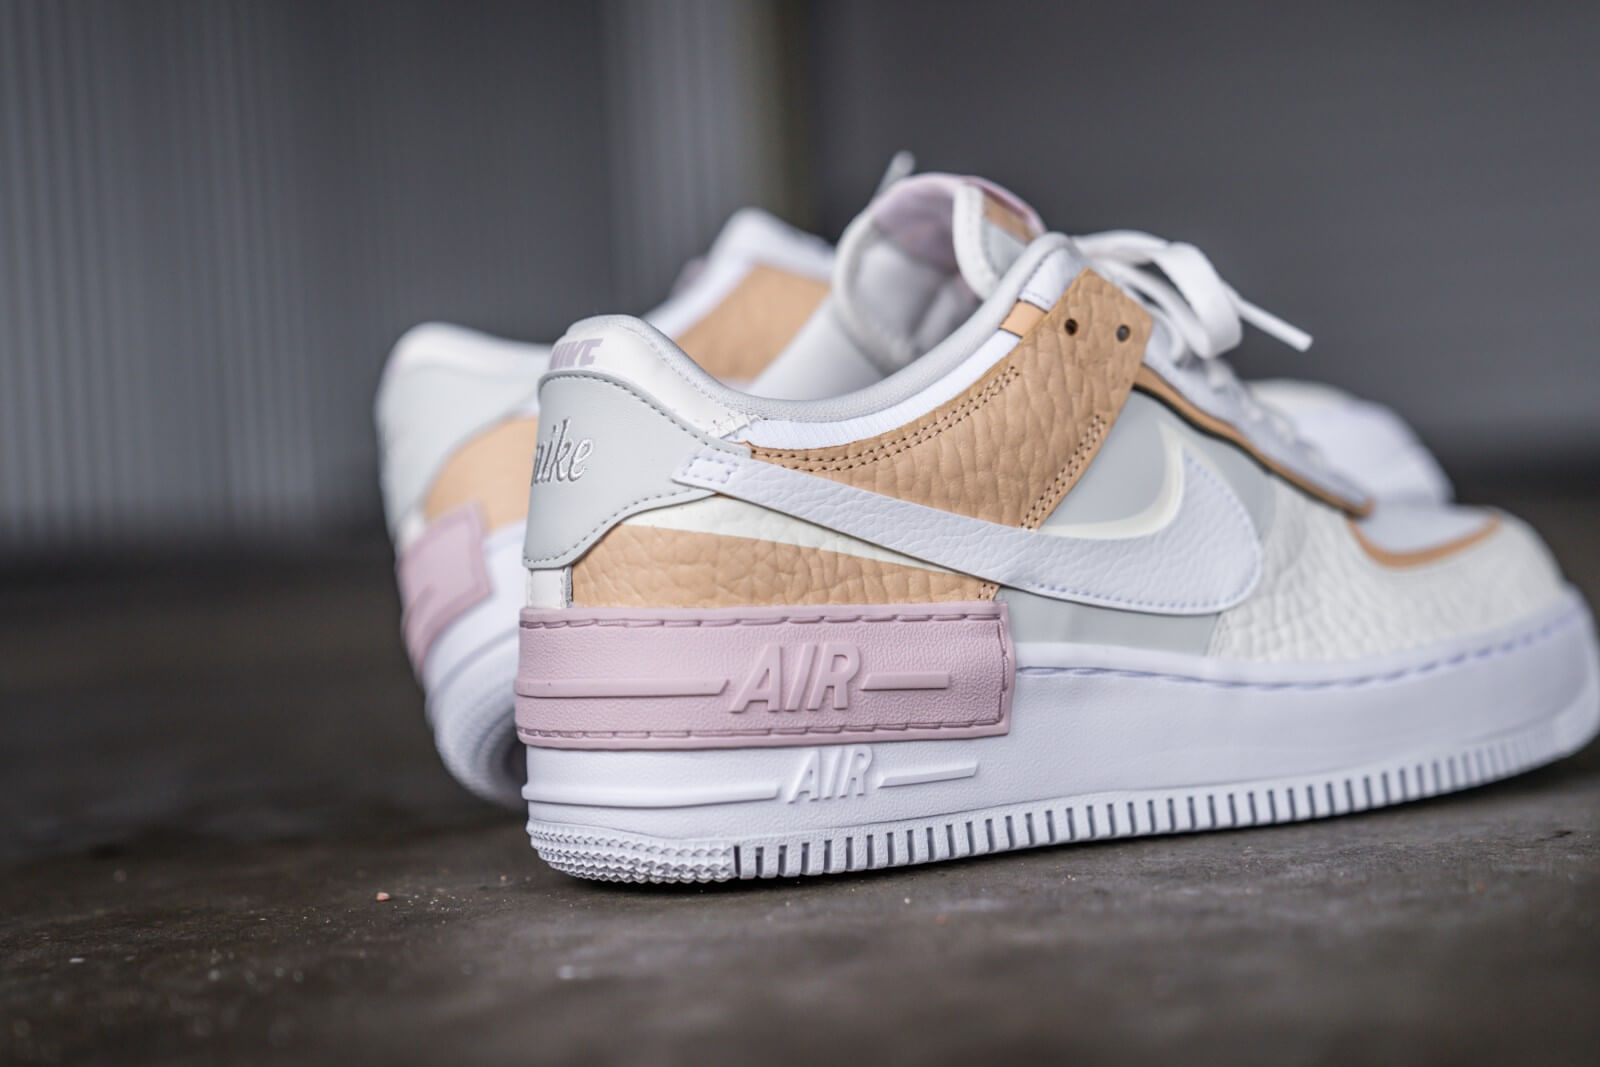 Nike Women S Air Force 1 Shadow Se Spruce Aura White Sail Ck3172 002 Check out the images below at a detailed look at the spruce aura nike air force 1 shadow. nike women s air force 1 shadow se spruce aura white sail